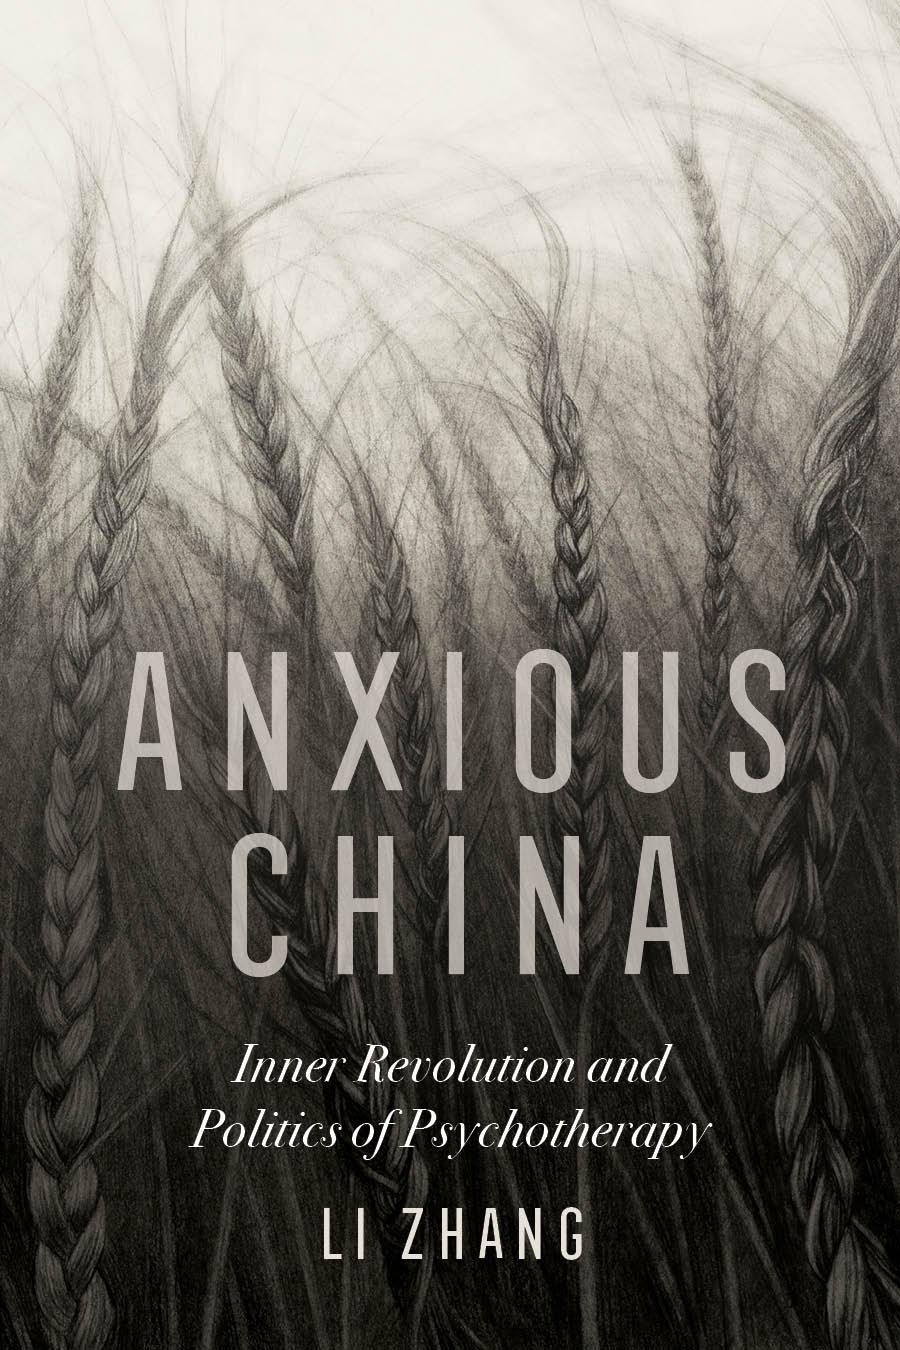 Book Forum: Reflections on Li Zhang's Anxious China by Priscilla Song